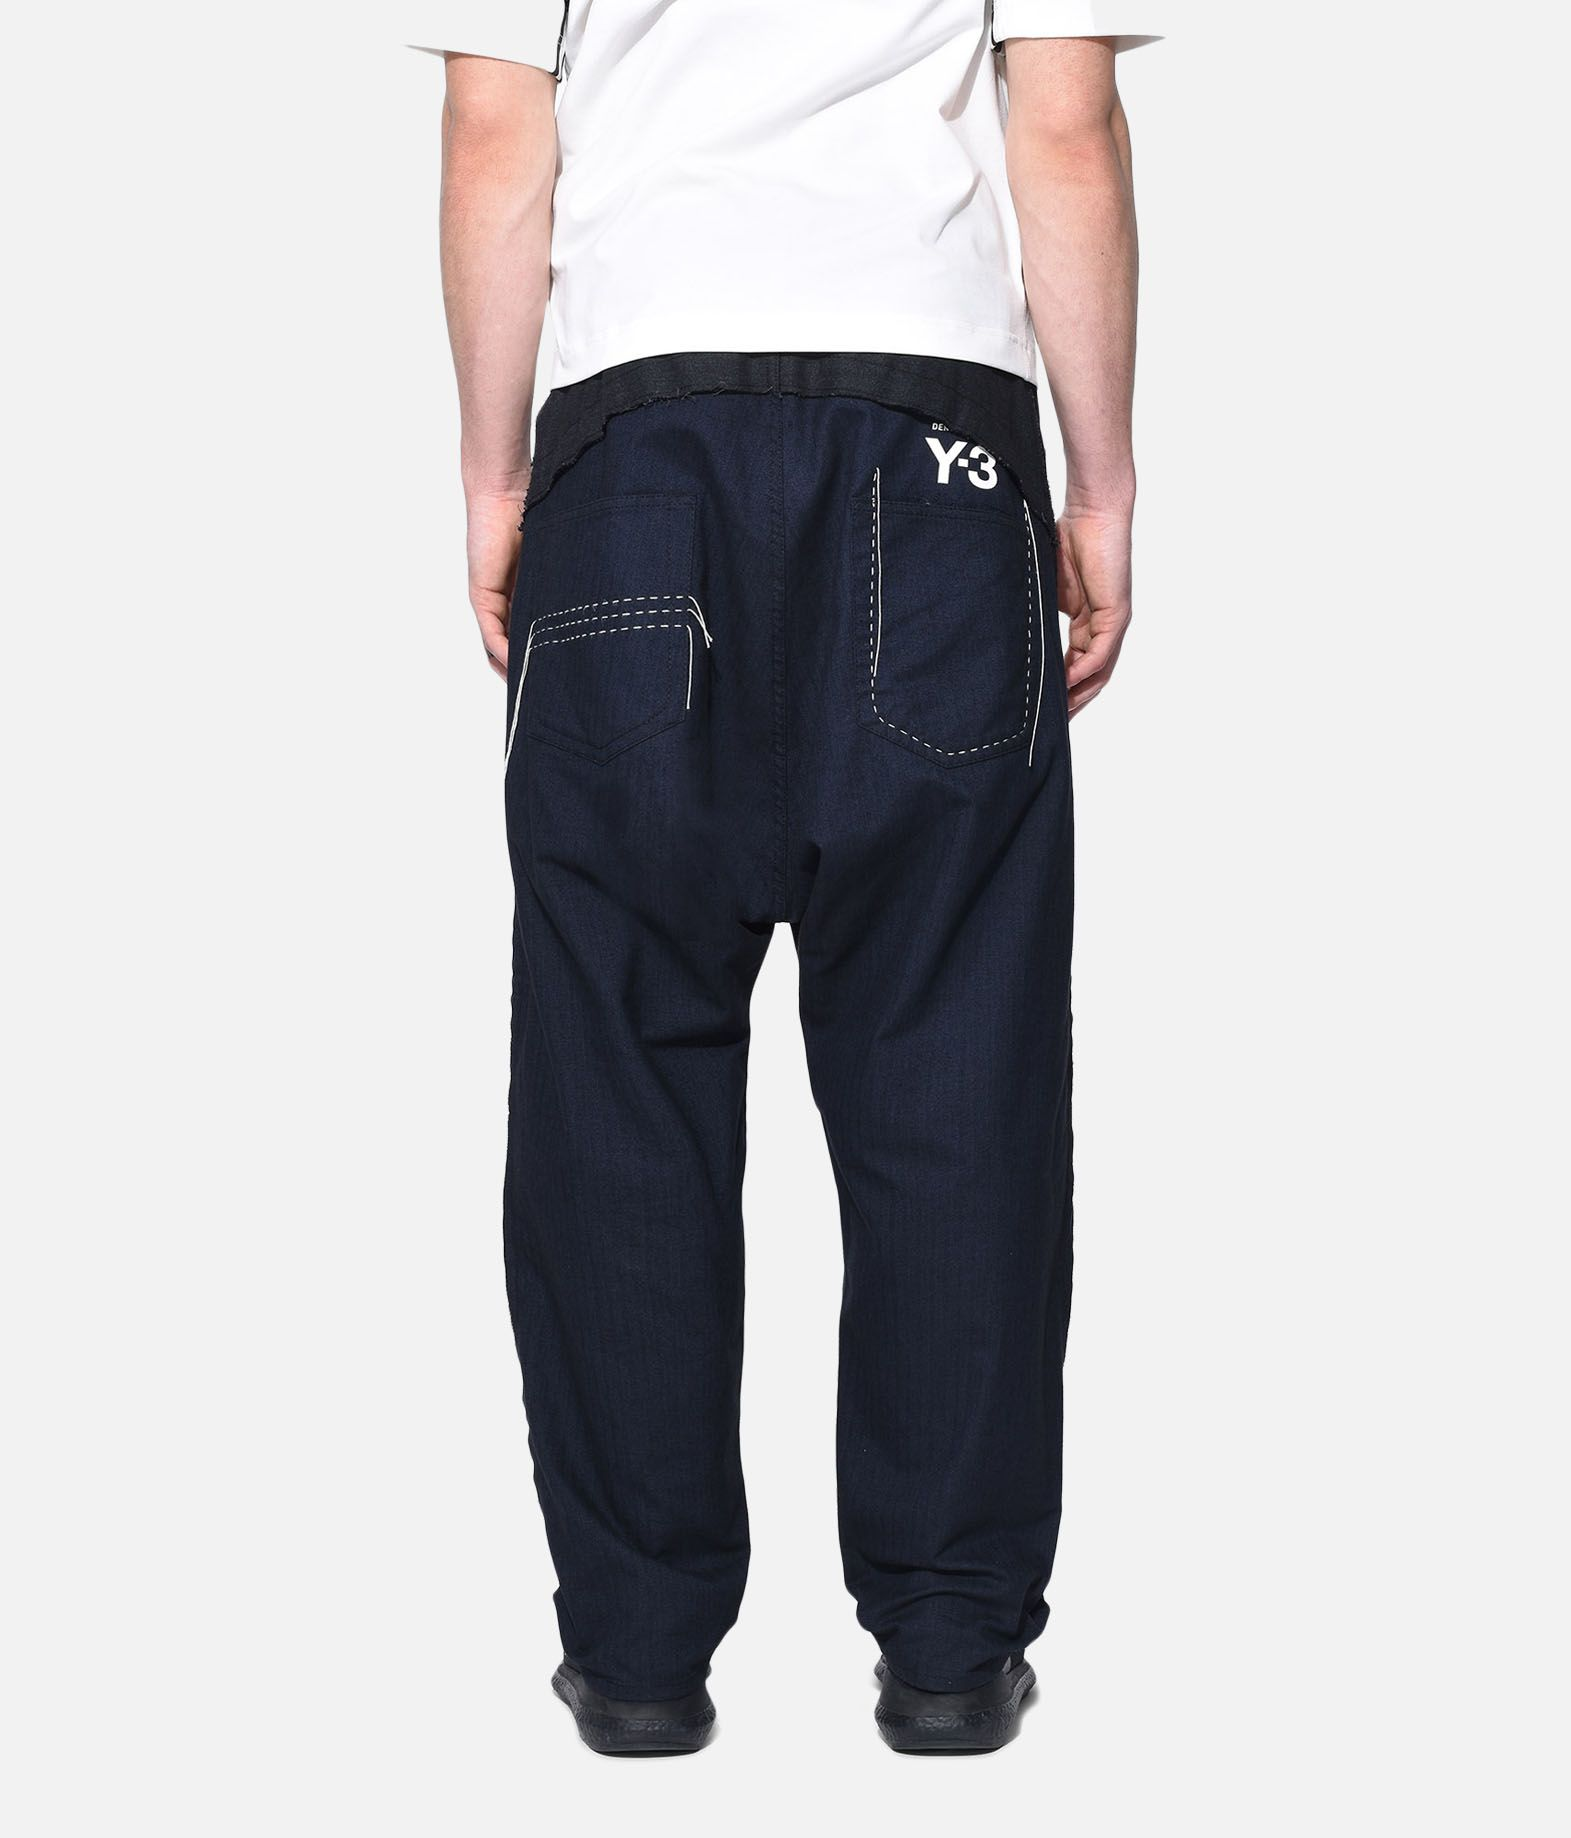 Y-3 Y-3 Herringbone Tailored Pants Dress pants Man d